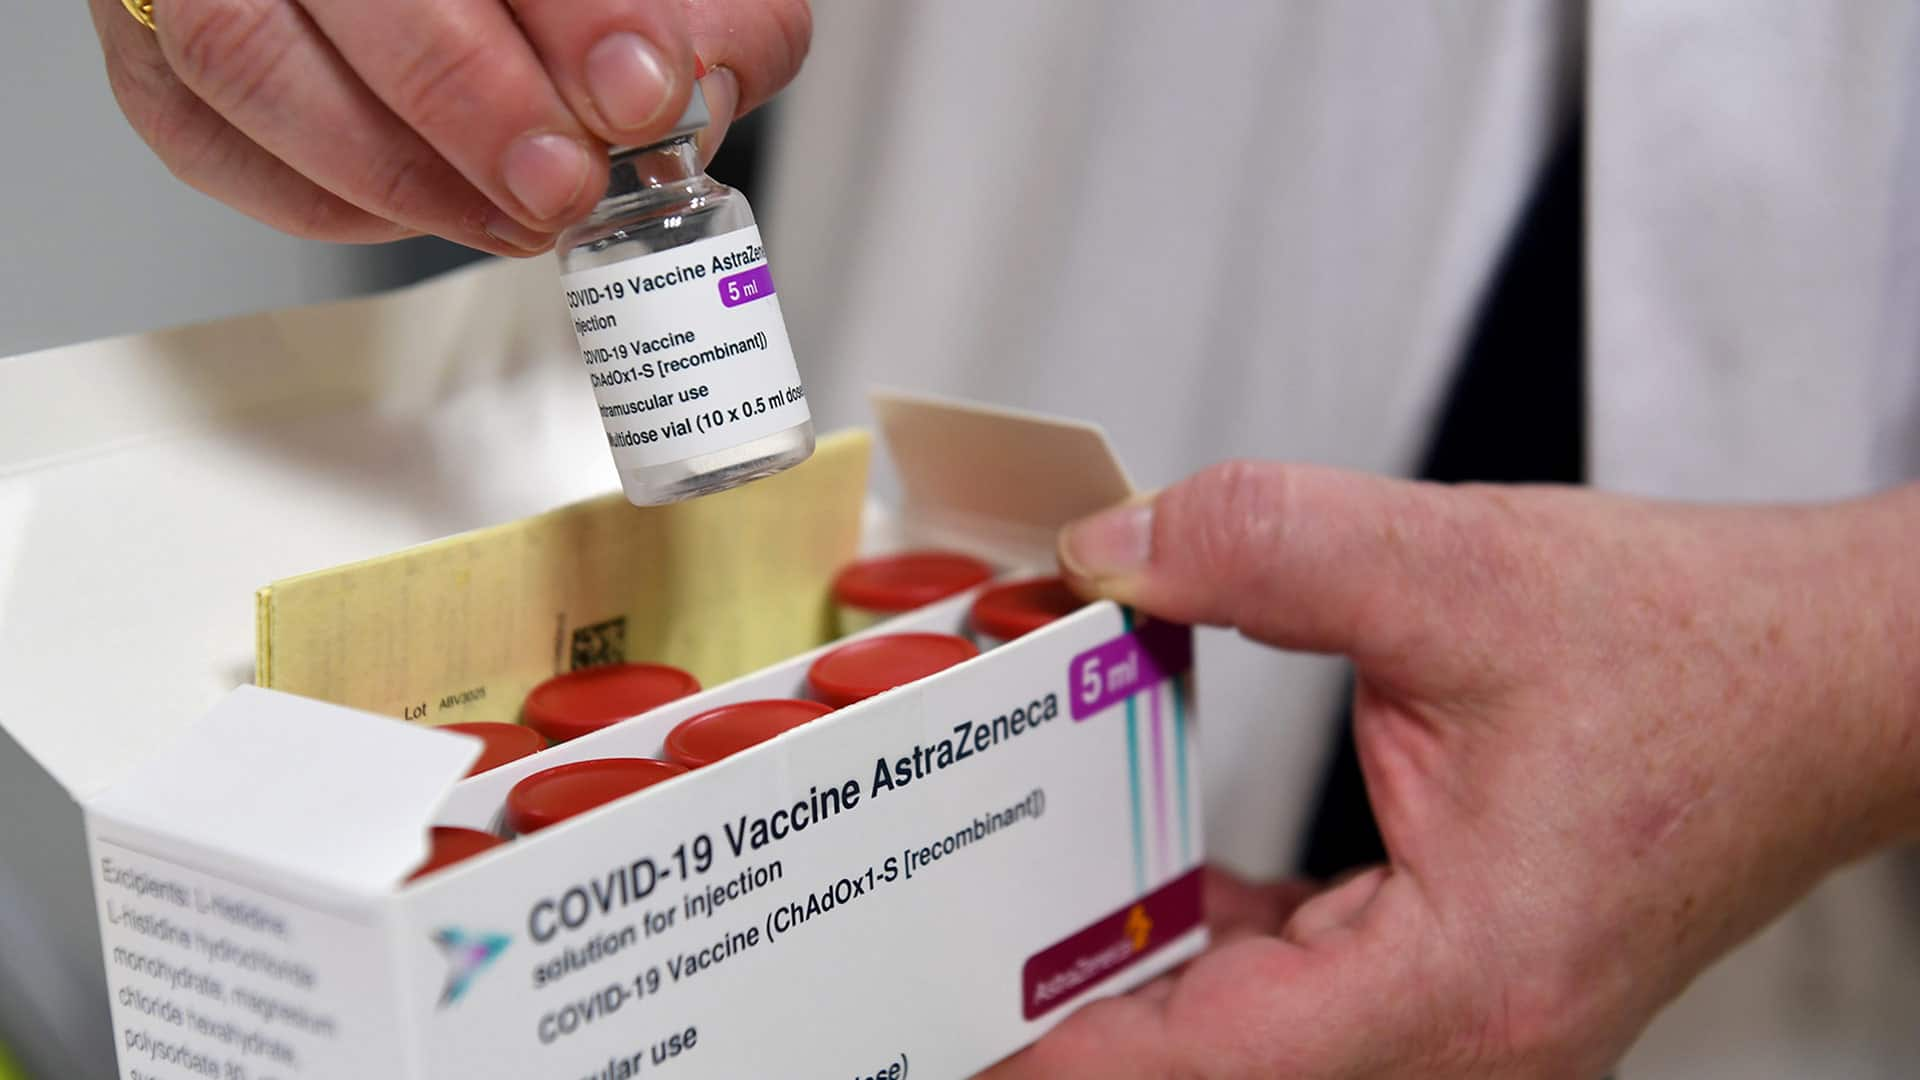 UK Black and South Asian groups lag in COVID-19 vaccinations